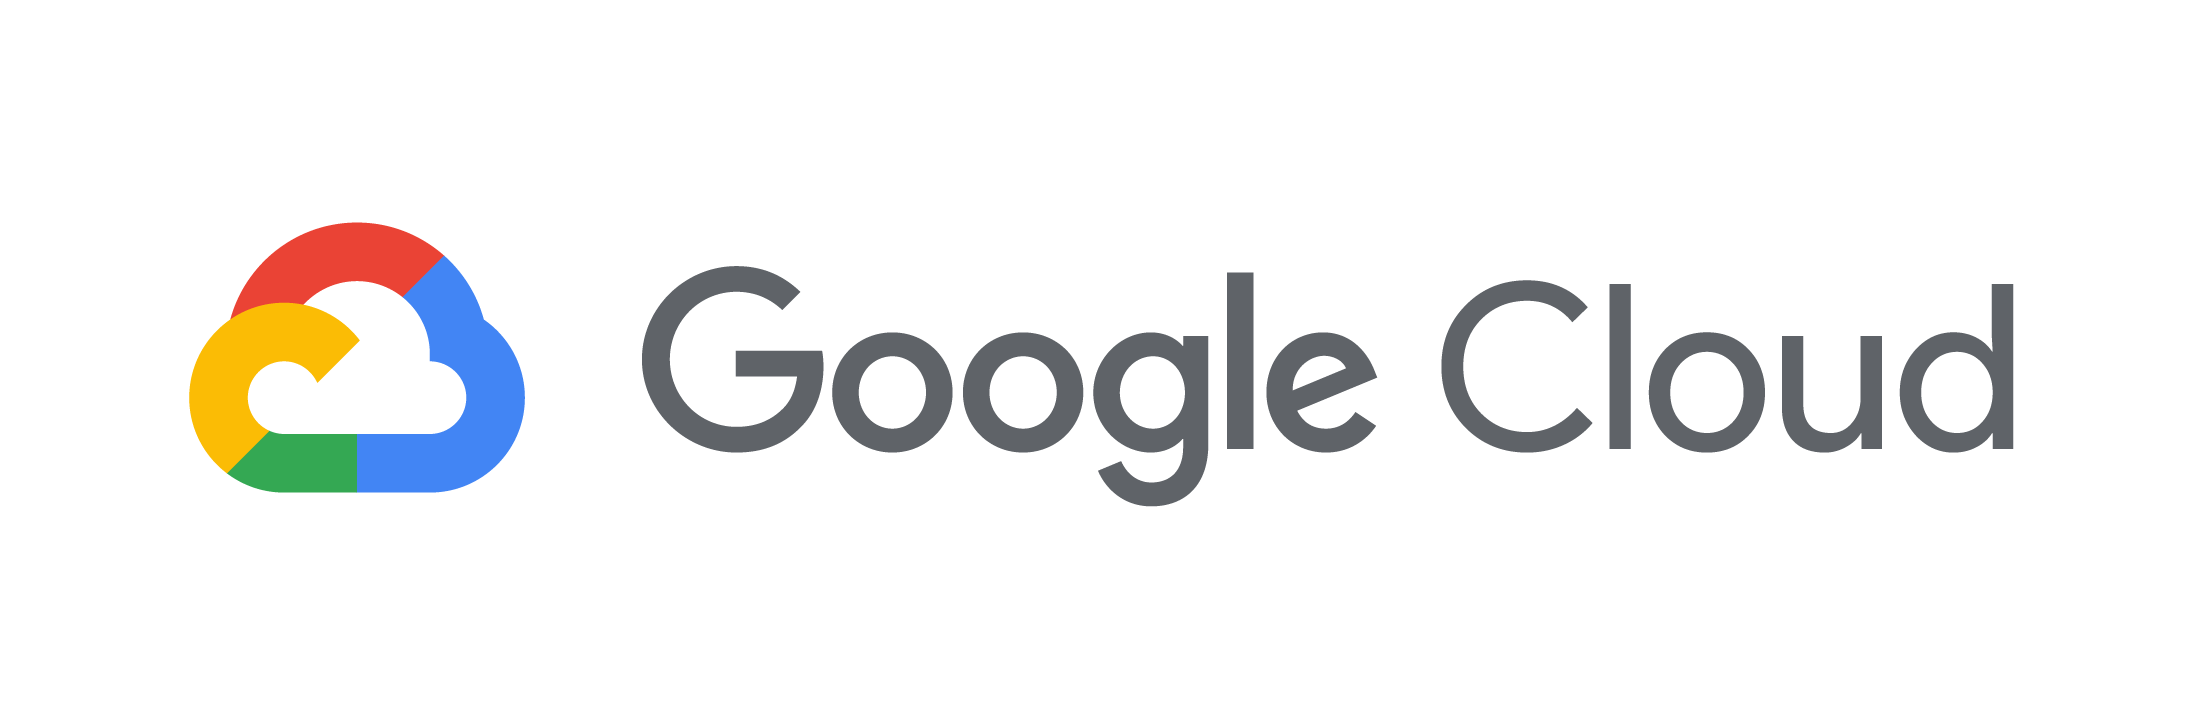 patrocinador google cloud